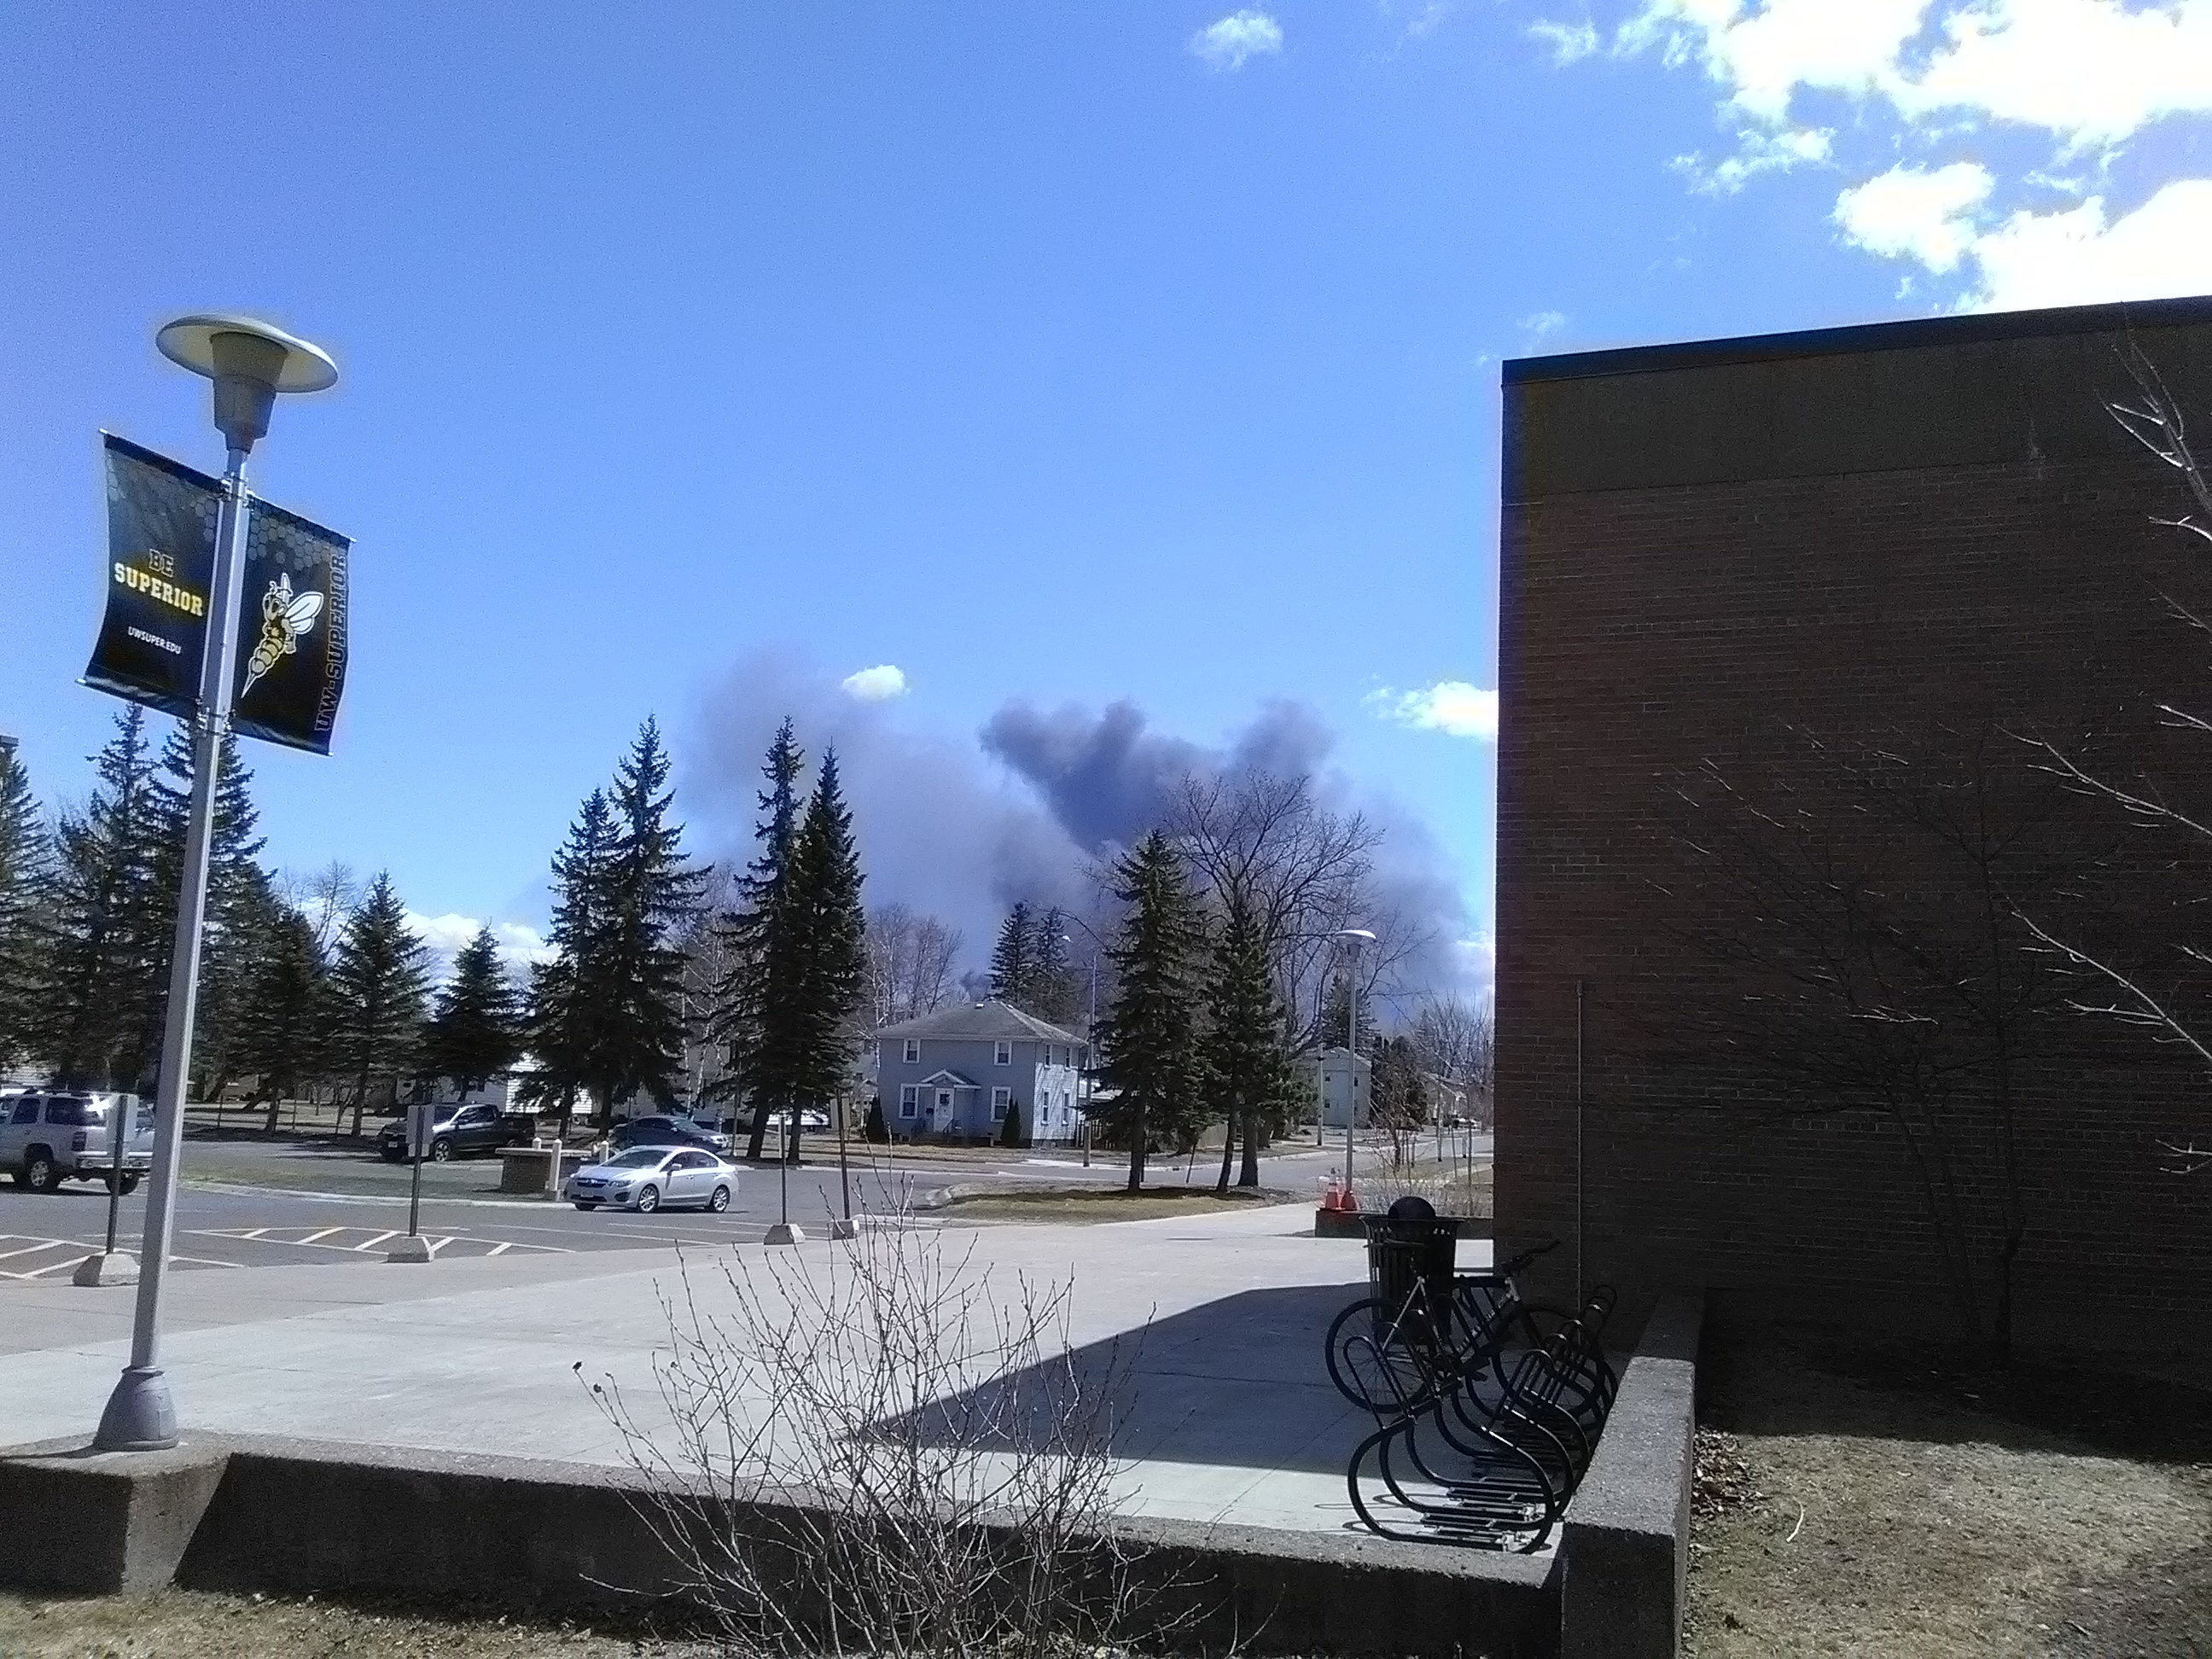 Husky refinery smoke in the distance